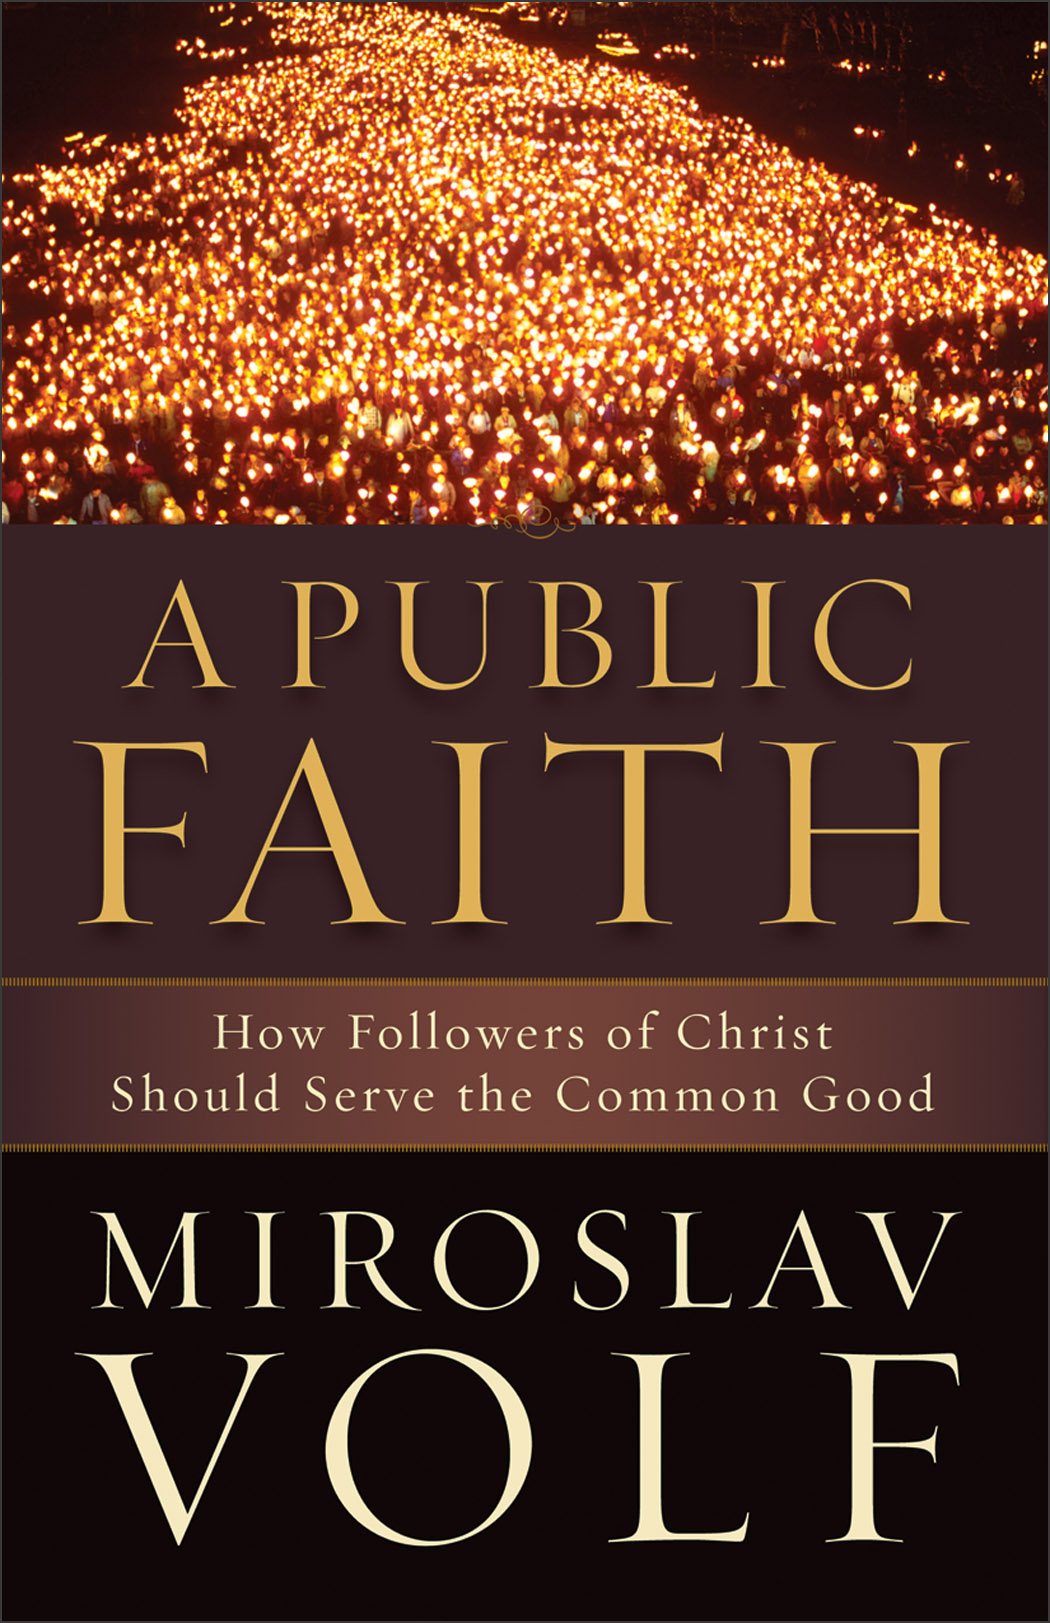 A Public Faith - How Followers of Christ Should Serve the Common Good - A Christian Response